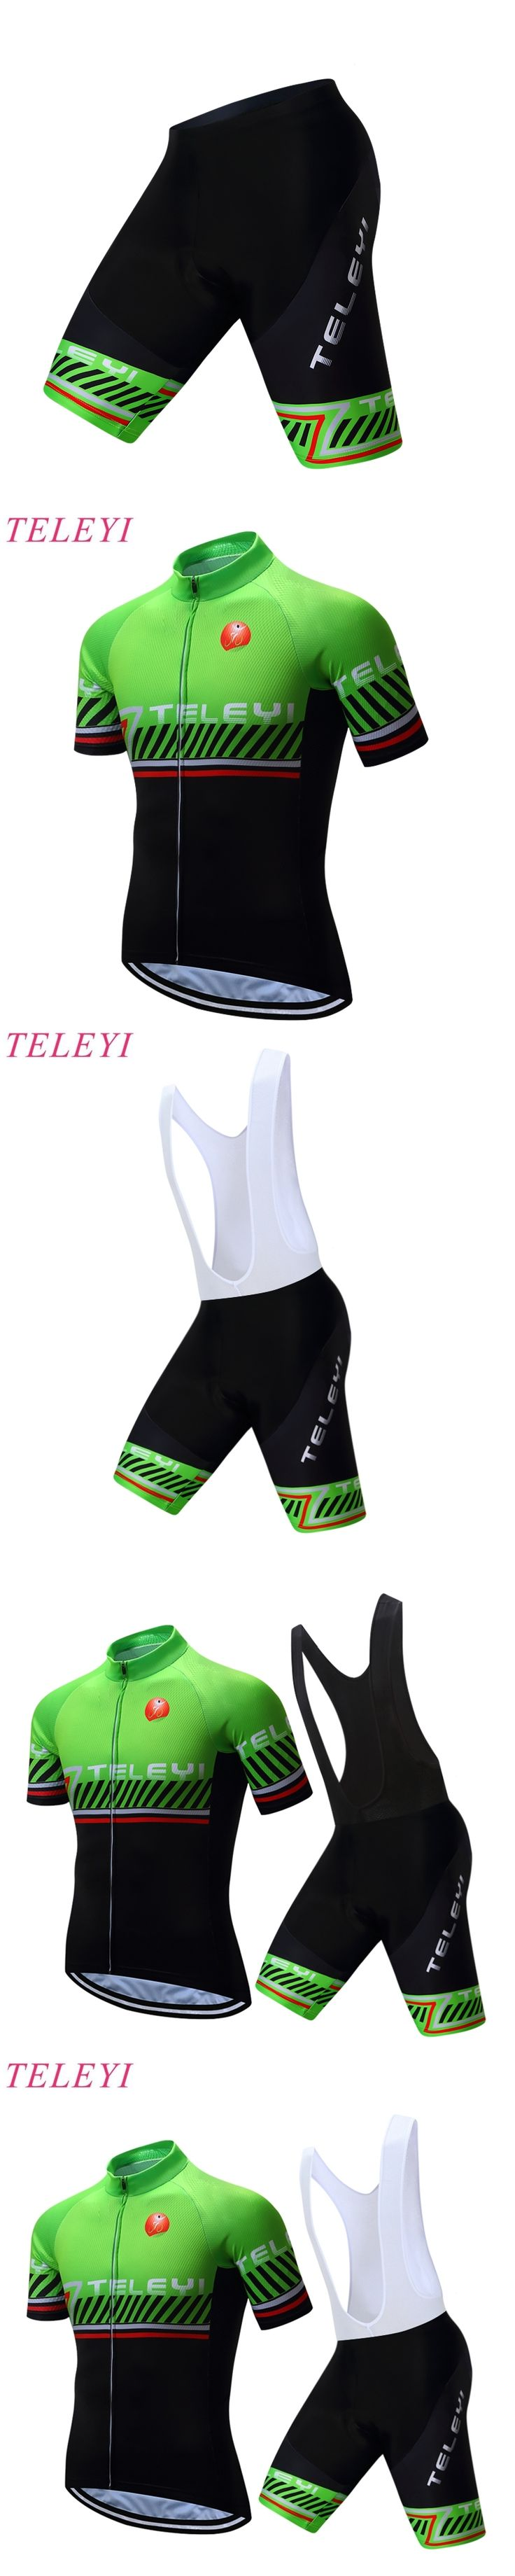 2016 Outdoor Sportswear Short Sleeve Pro Team Bike Cycling clothing/Cycling wear/ Cycling jersey Bicycle GEL Breathable Pad